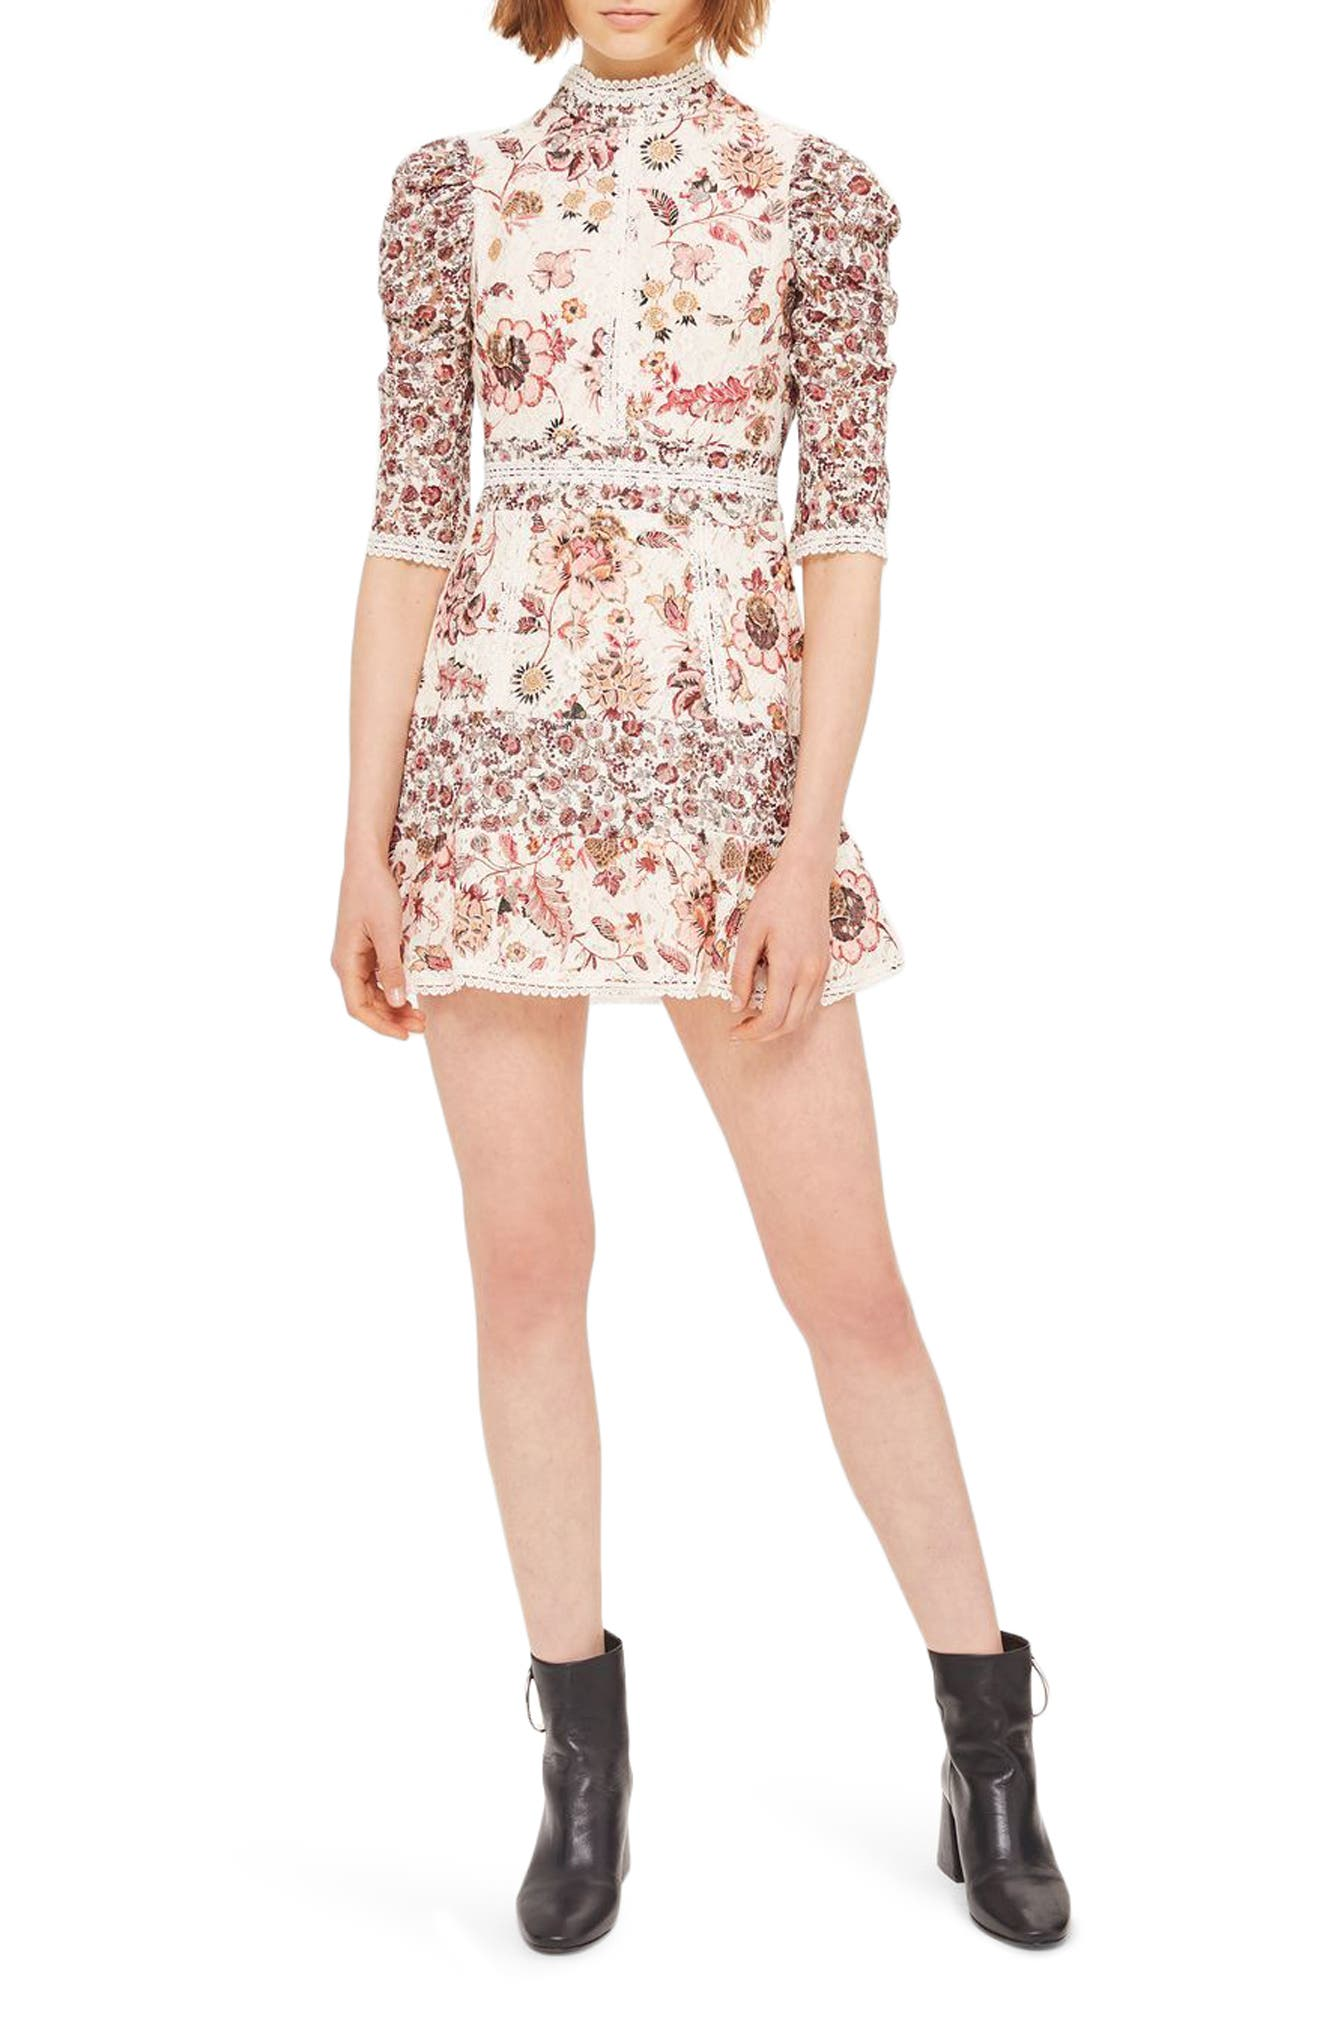 Alternate Image 1 Selected - Topshop Floral Lace Strappy Back Dress